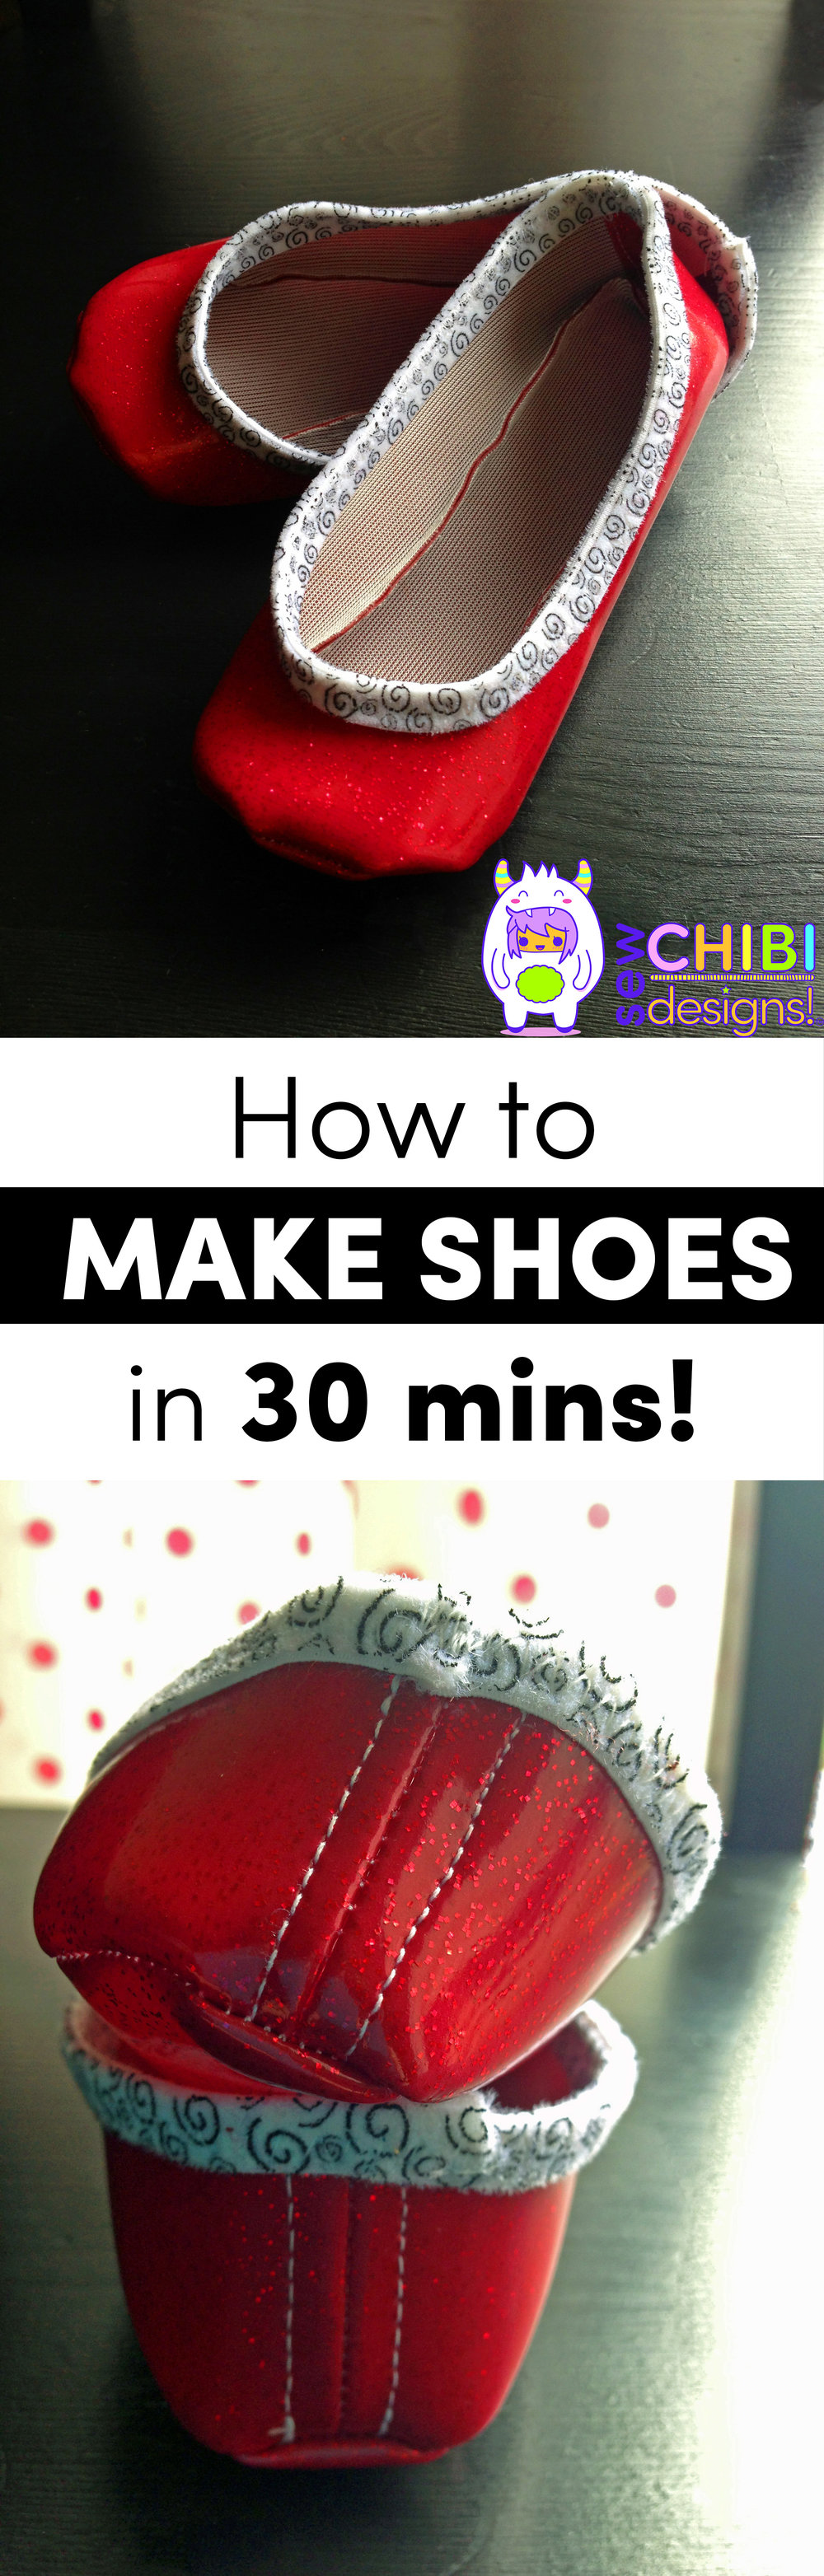 30 minute shoes